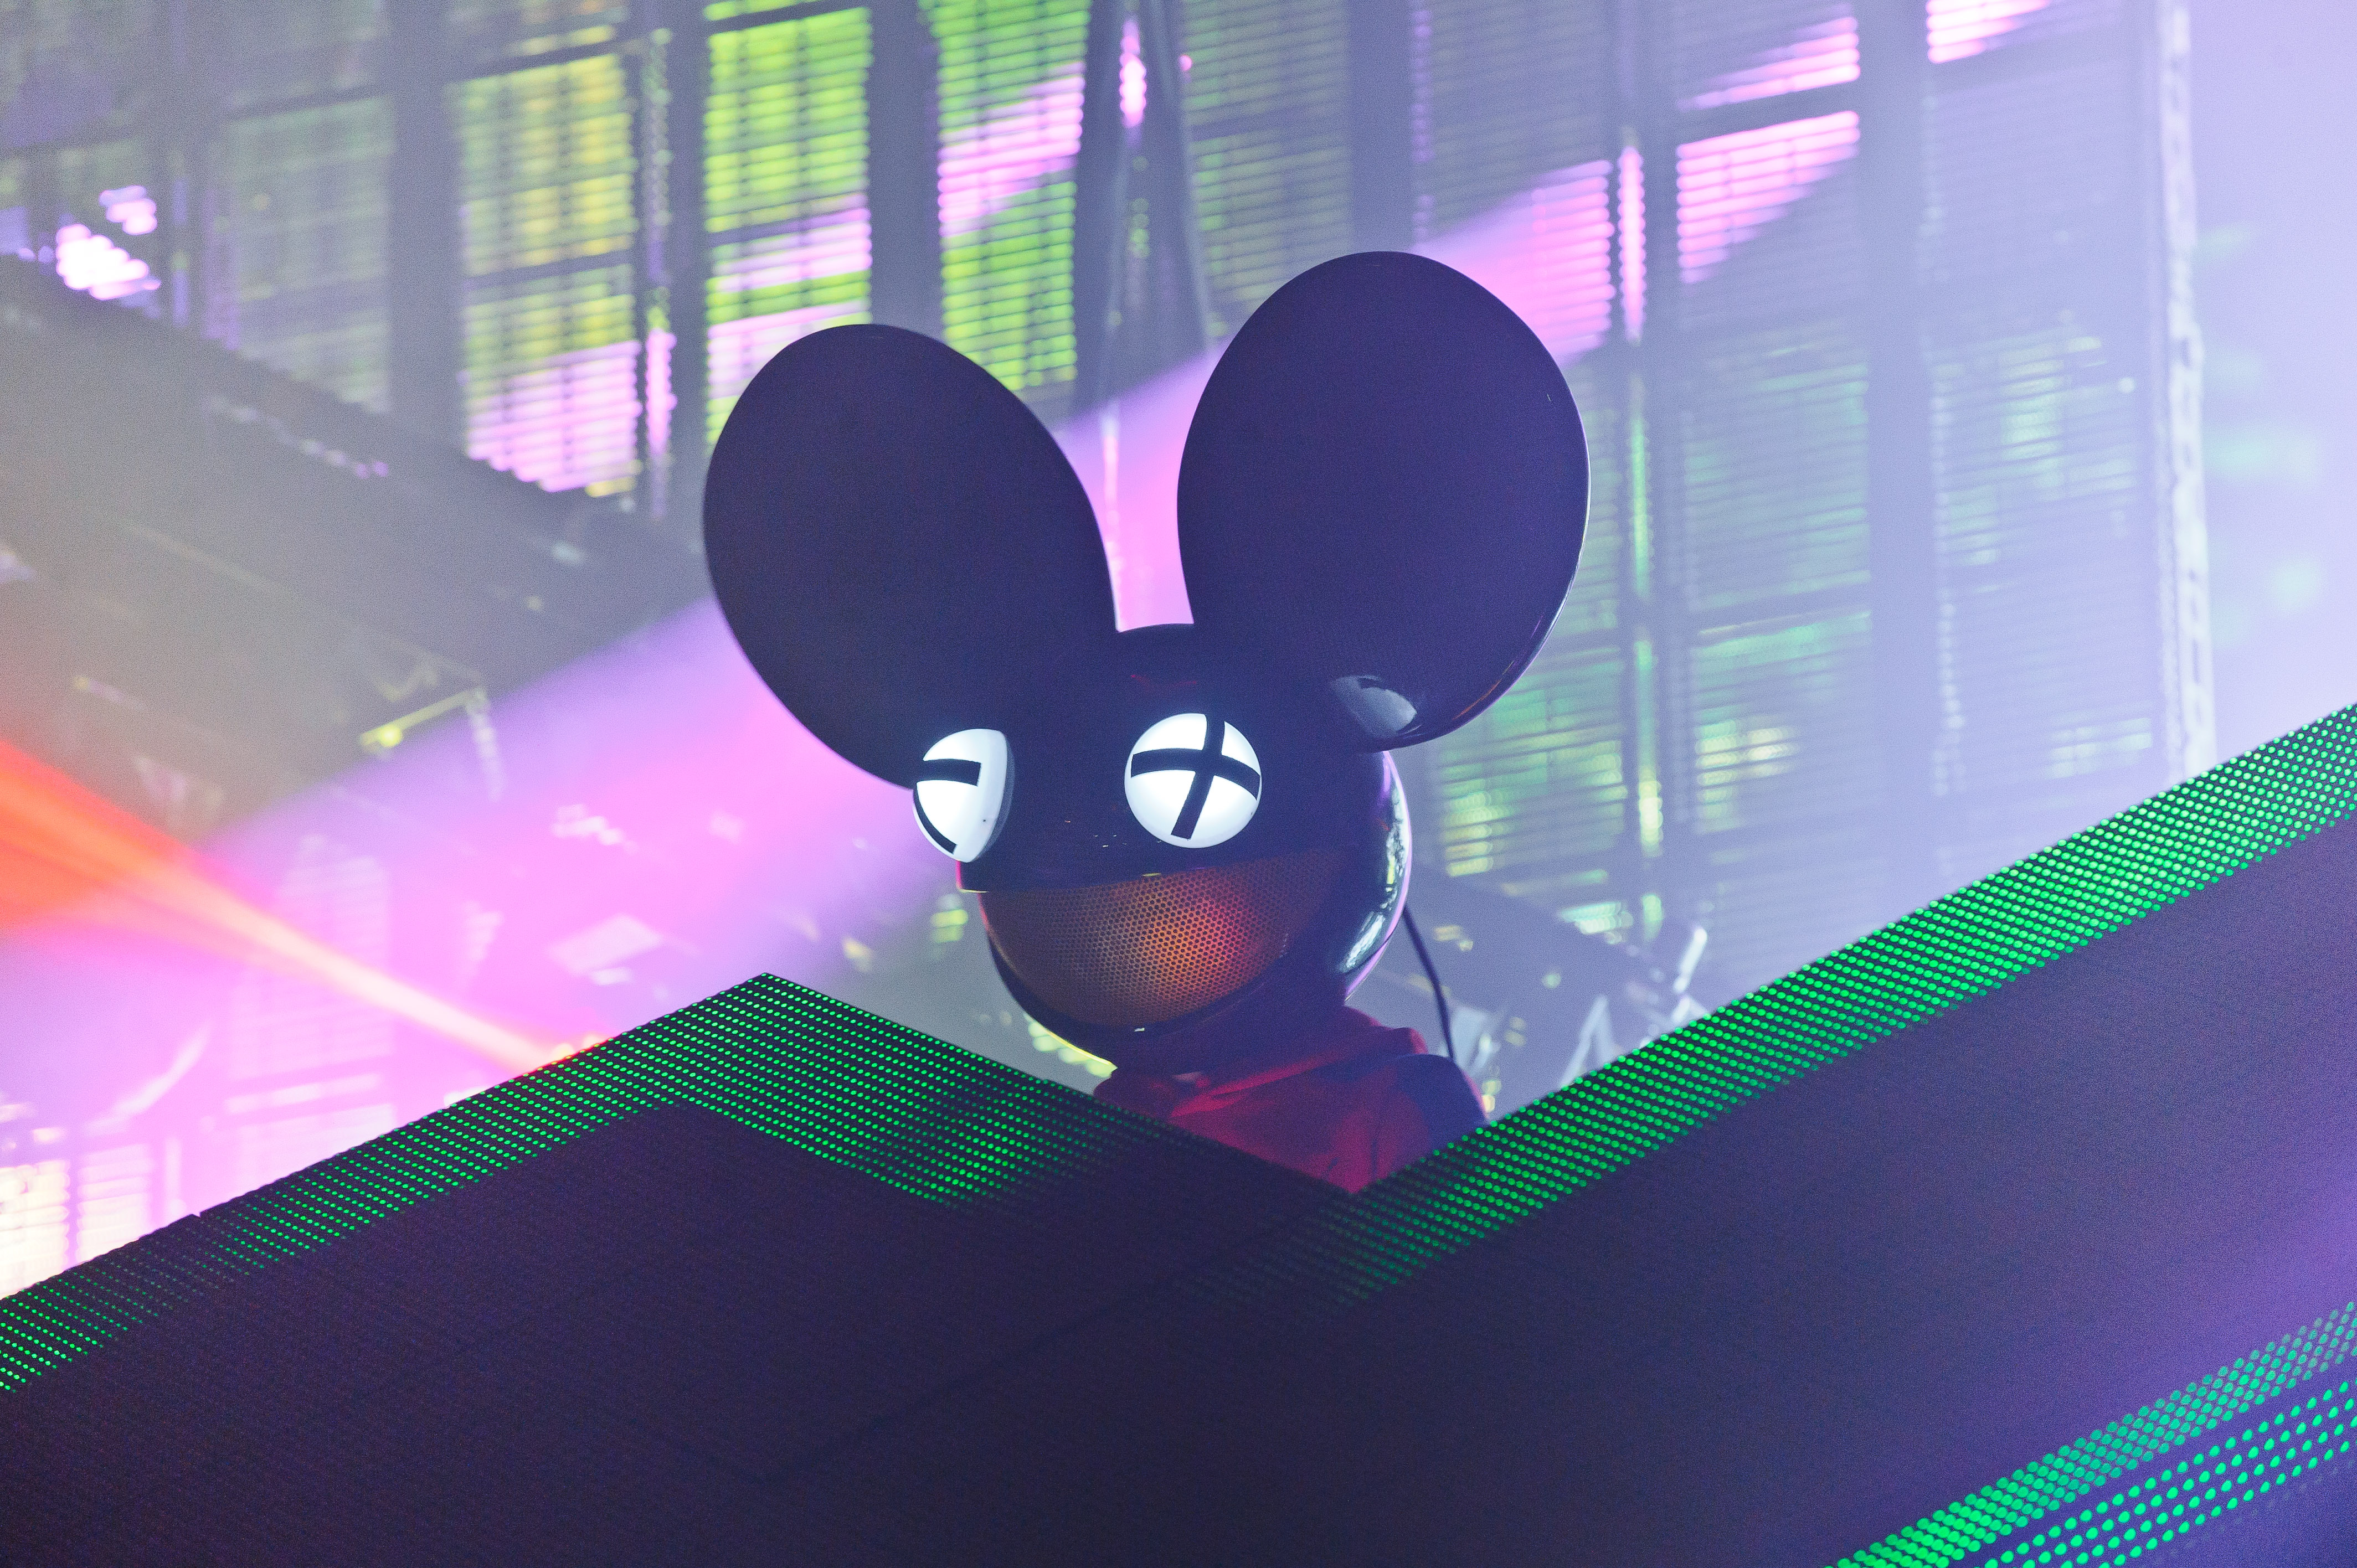 Deadmau5 performs on stage at South West Four Festival 2014 on Aug. 24, 2014, in London